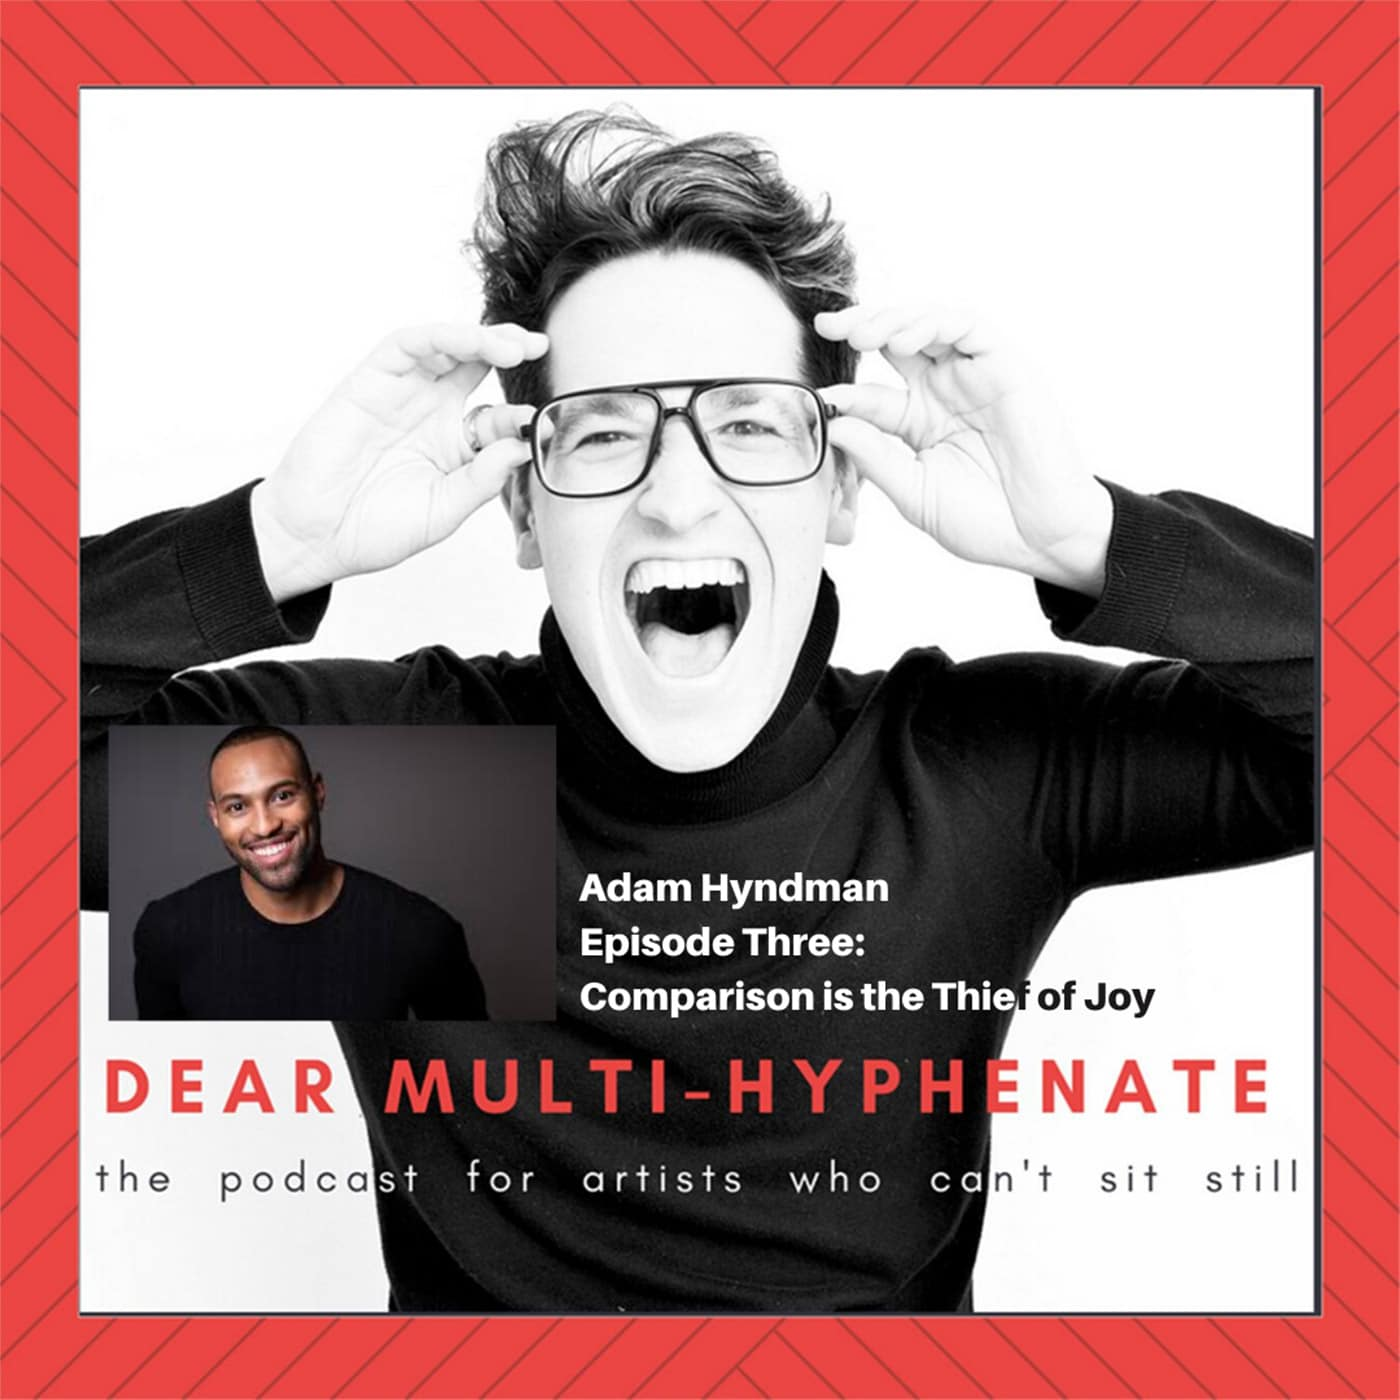 Dear Multi-Hyphenate Episode 3 Adam Hyndman